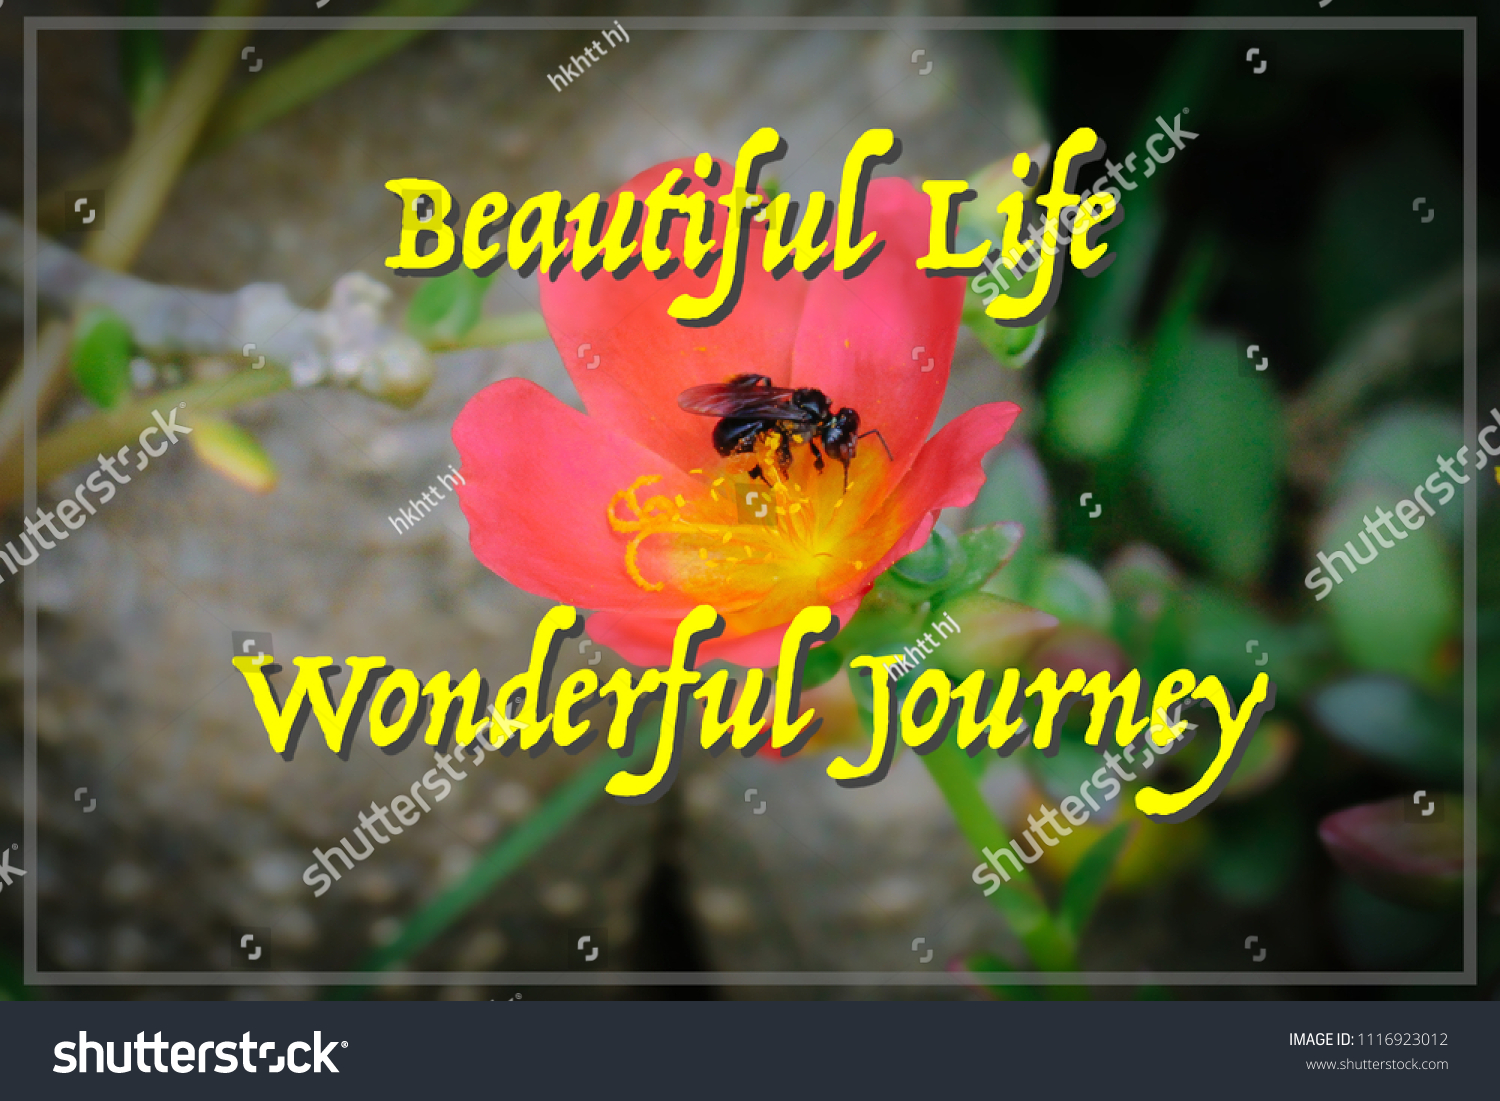 Motivational Inspirational Quotes Beautiful Life Wonderful Journey